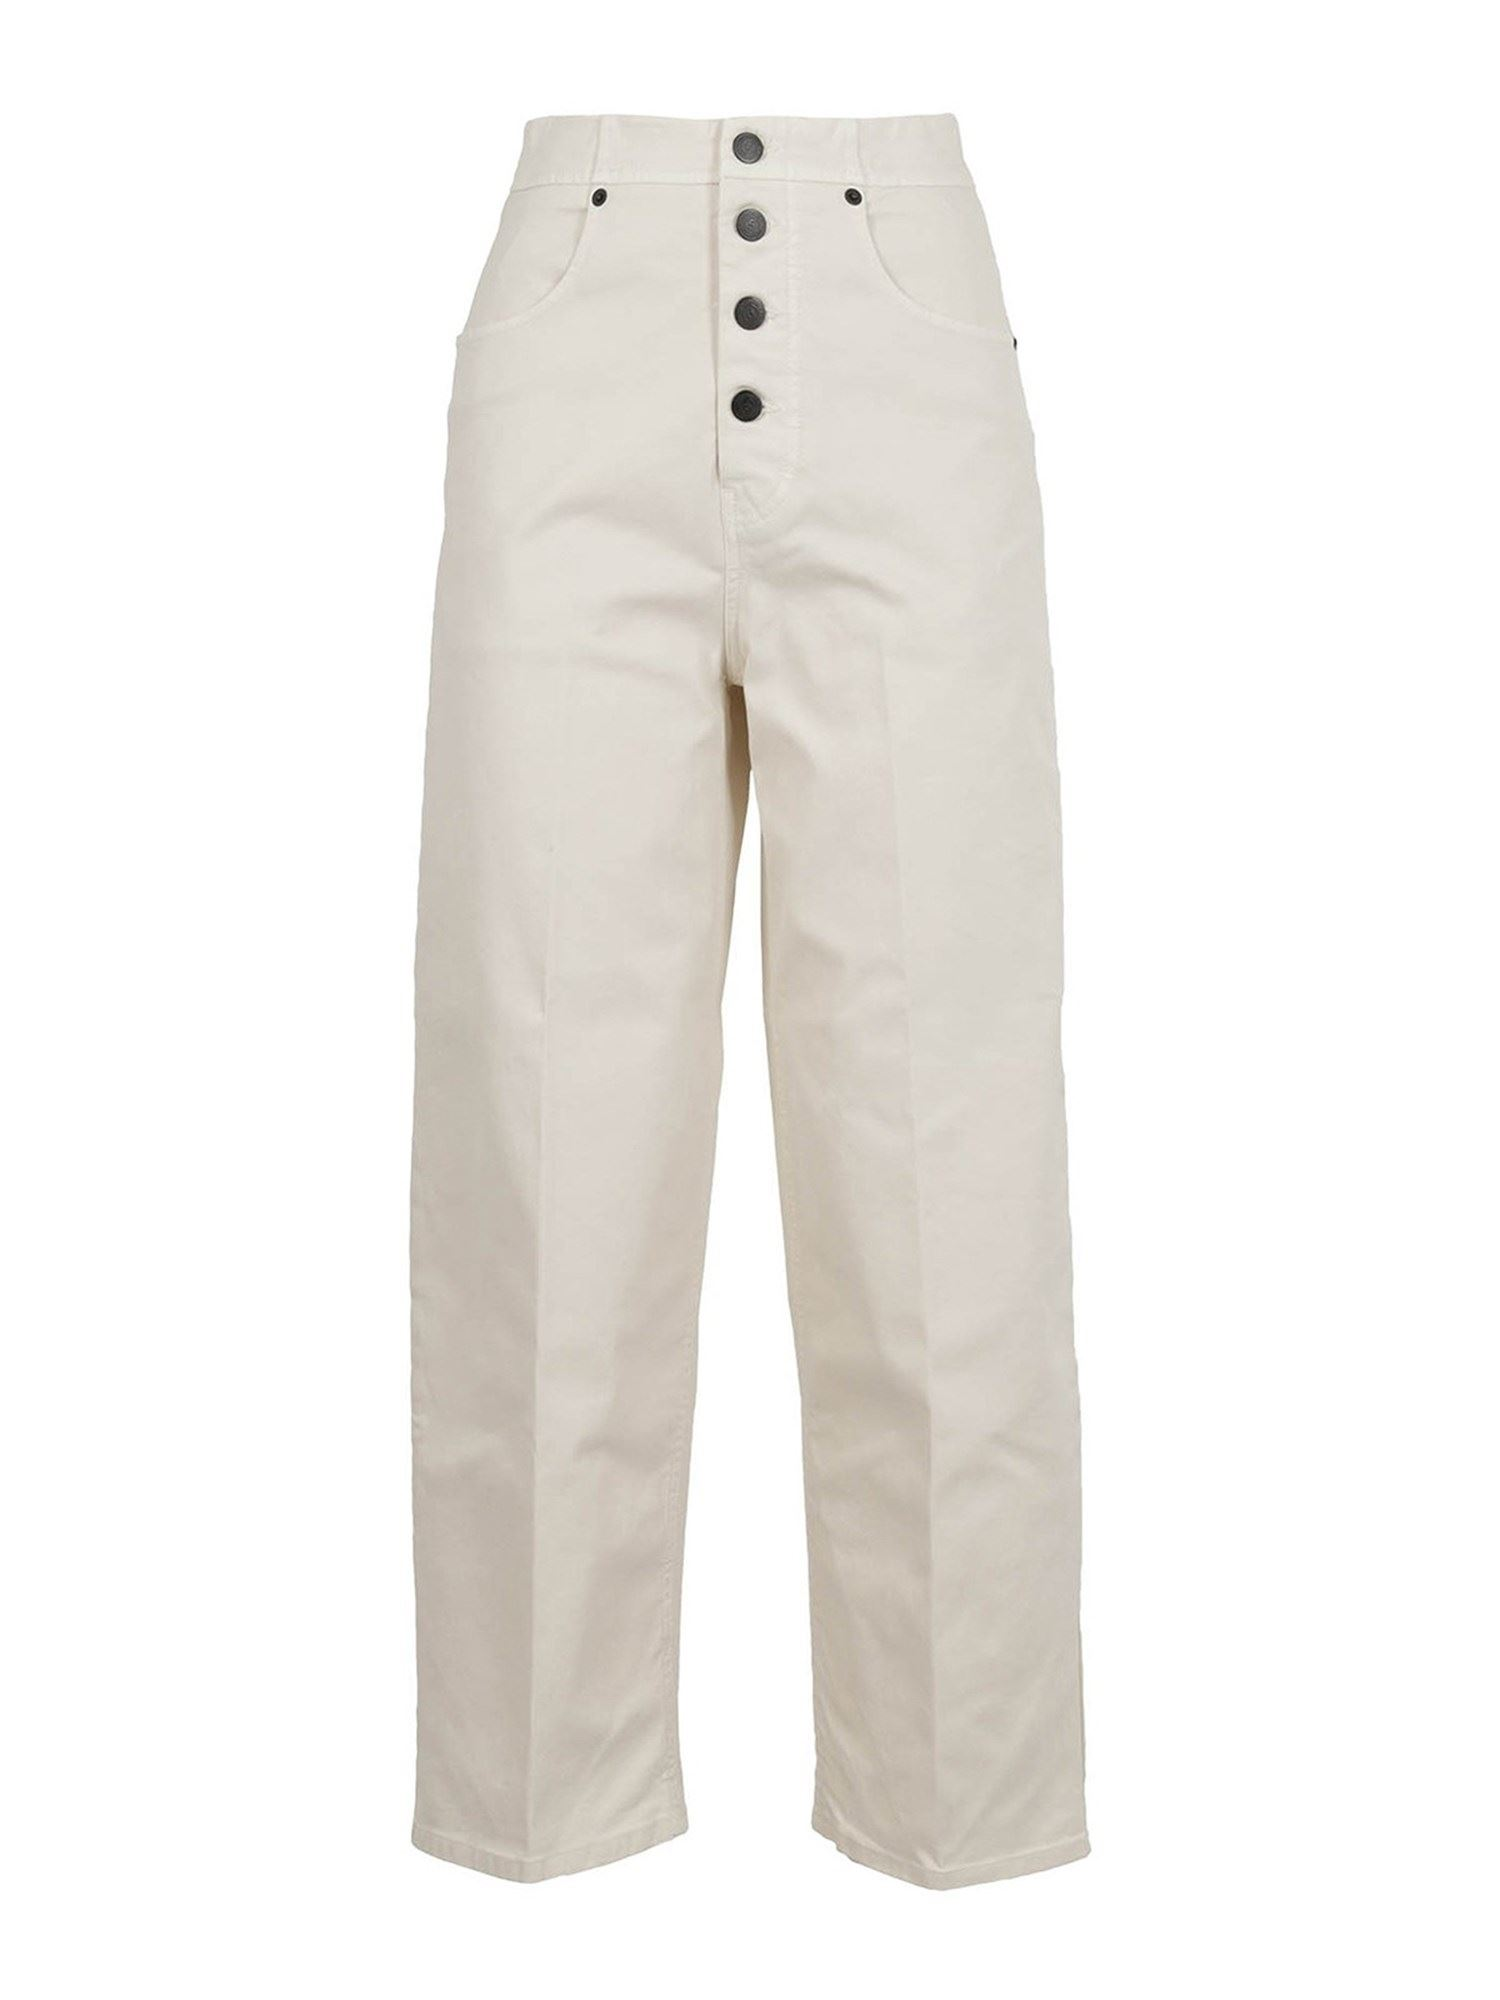 Department 5 HIGH WAISTED GABARDINE TROUSERS IN WHITE